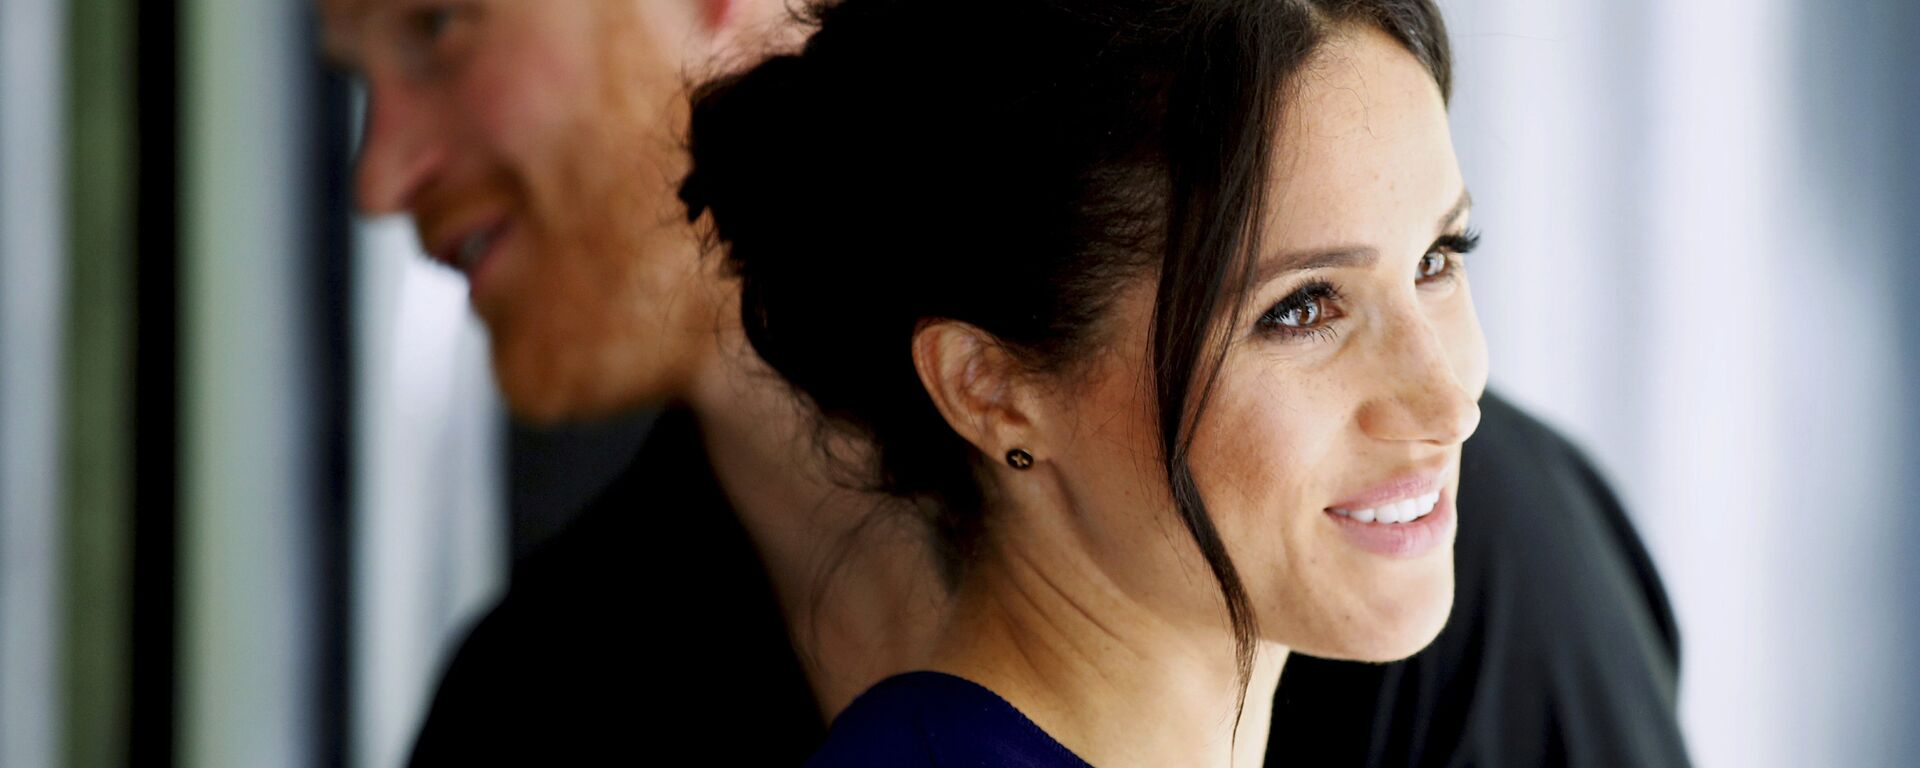 Britain's Prince Harry and Meghan, Duchess of Sussex smile during their visit to the National Kiwi Hatchery at Rainbow Springs in Rotorua, New Zealand, Wednesday, Oct. 31, 2018 - Sputnik Česká republika, 1920, 16.05.2021